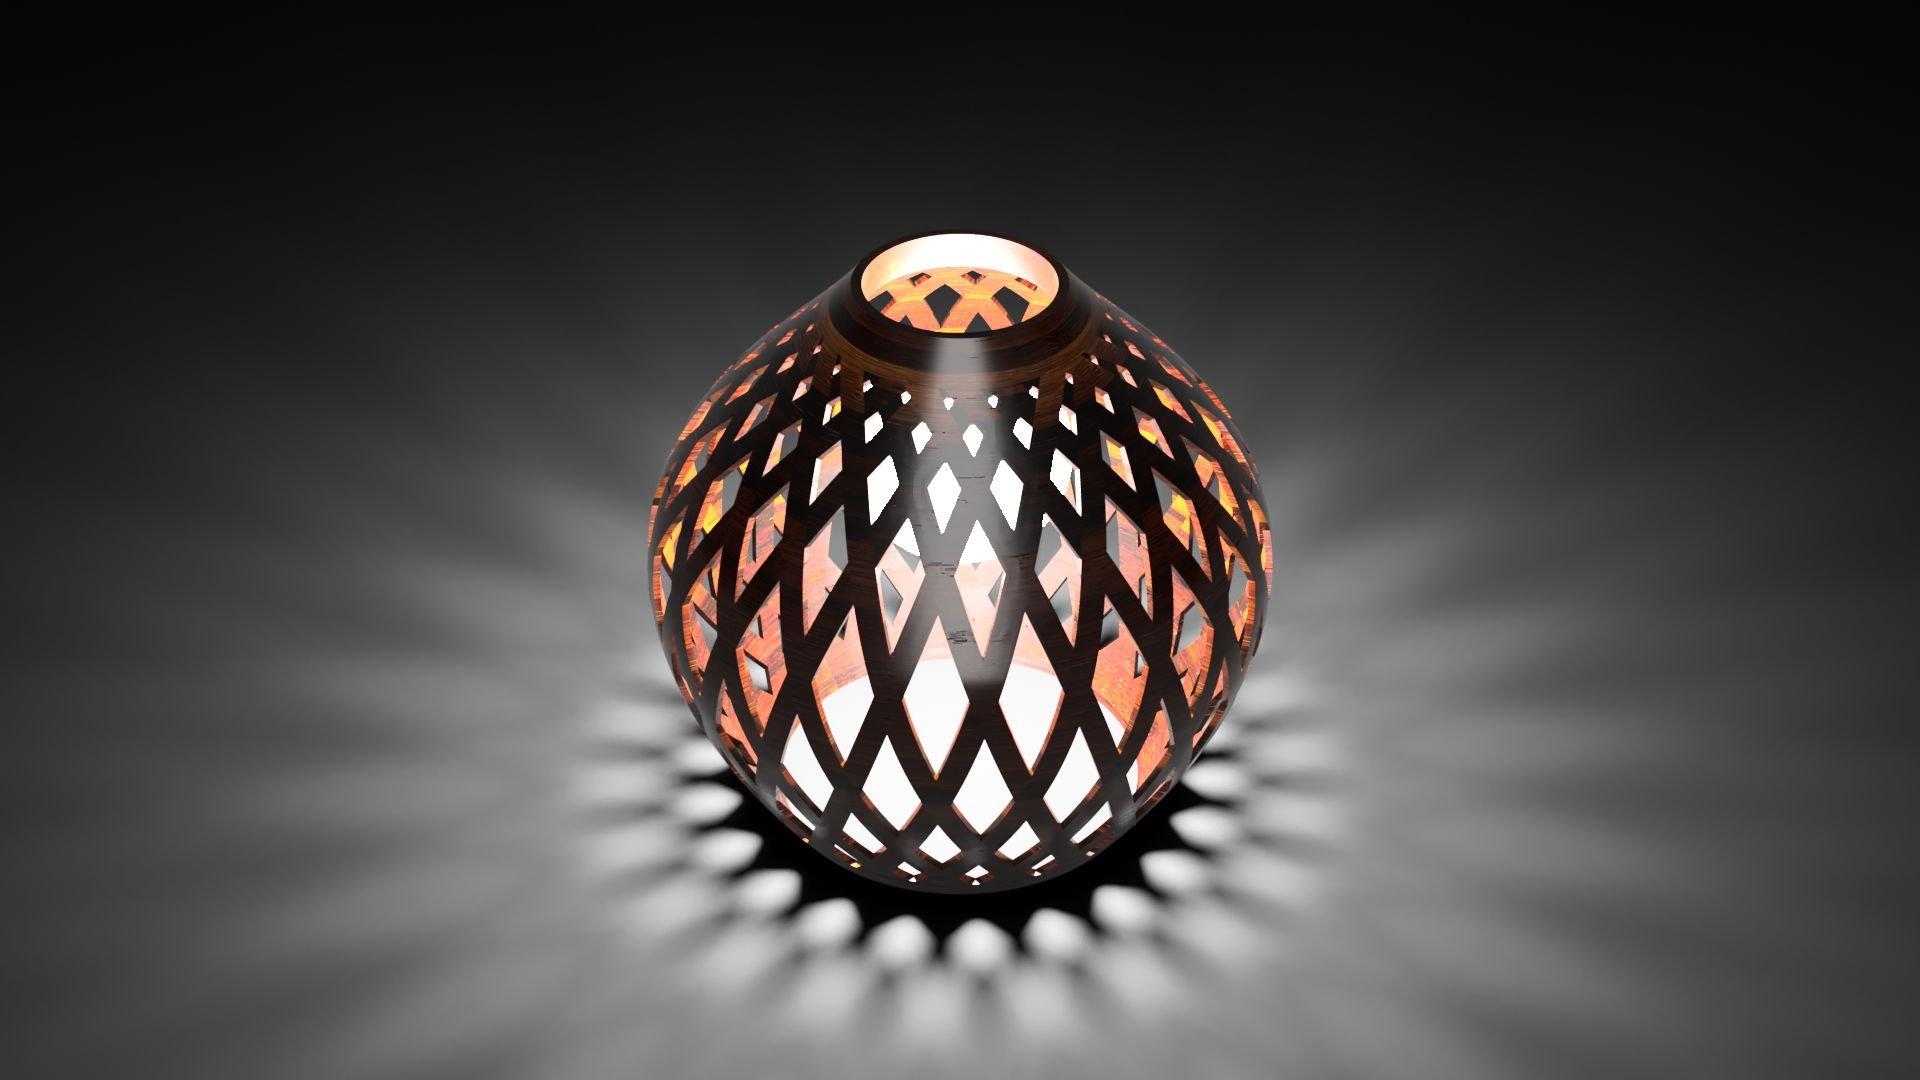 Tsc-lamp-shade-v1-2017-oct-27-05-42-20am-000-customizedview14252364948-png-3500-3500